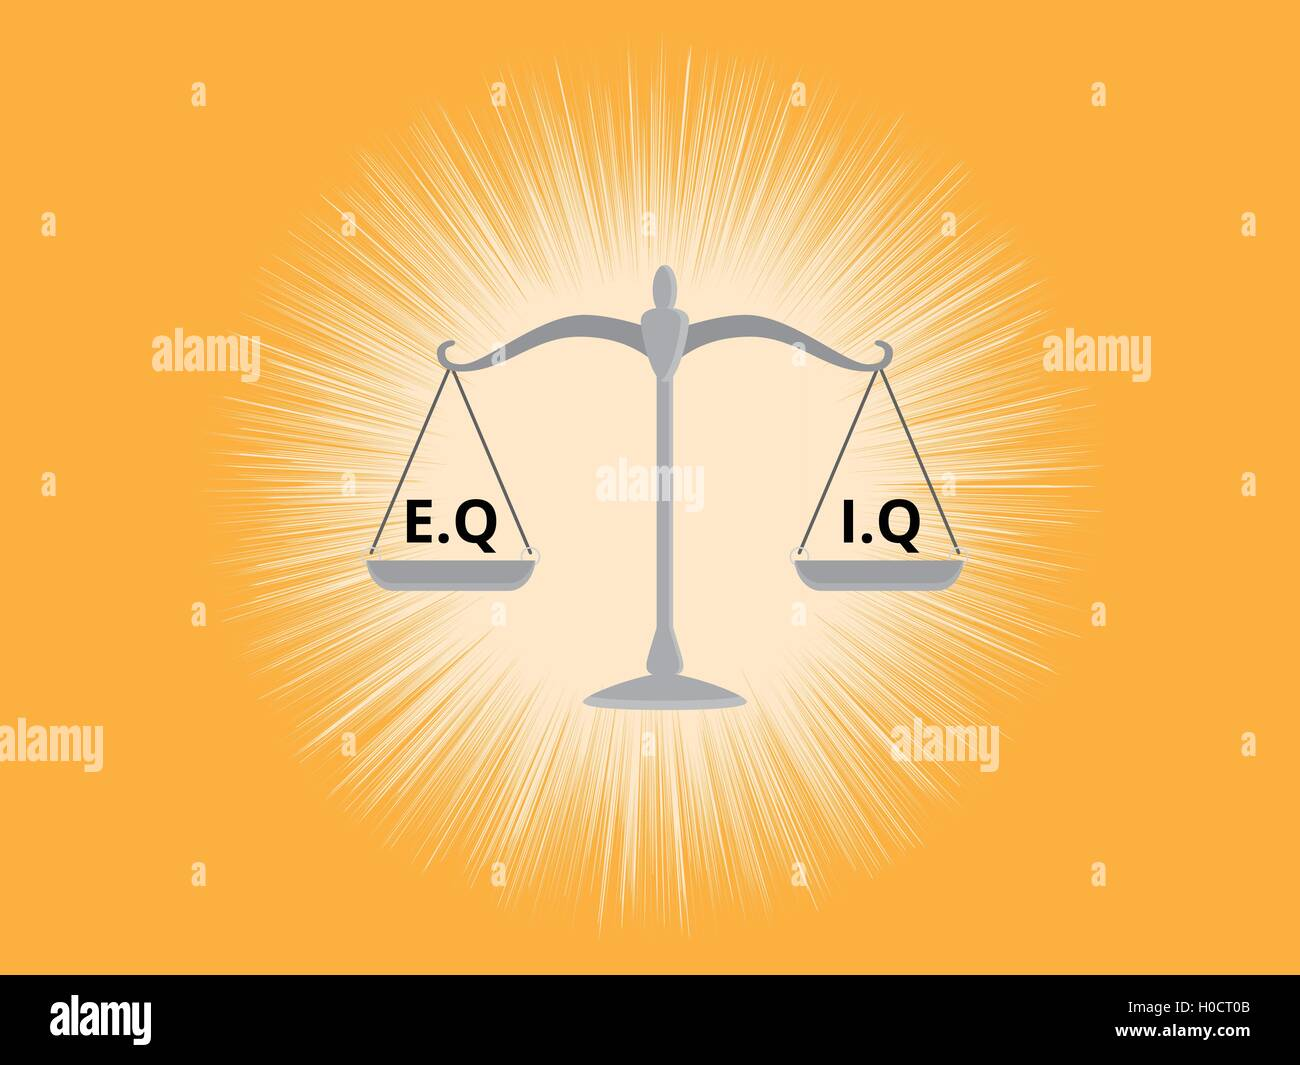 iq or eq intellectual or vs emotional question compare on a scale with yellow background - Stock Image